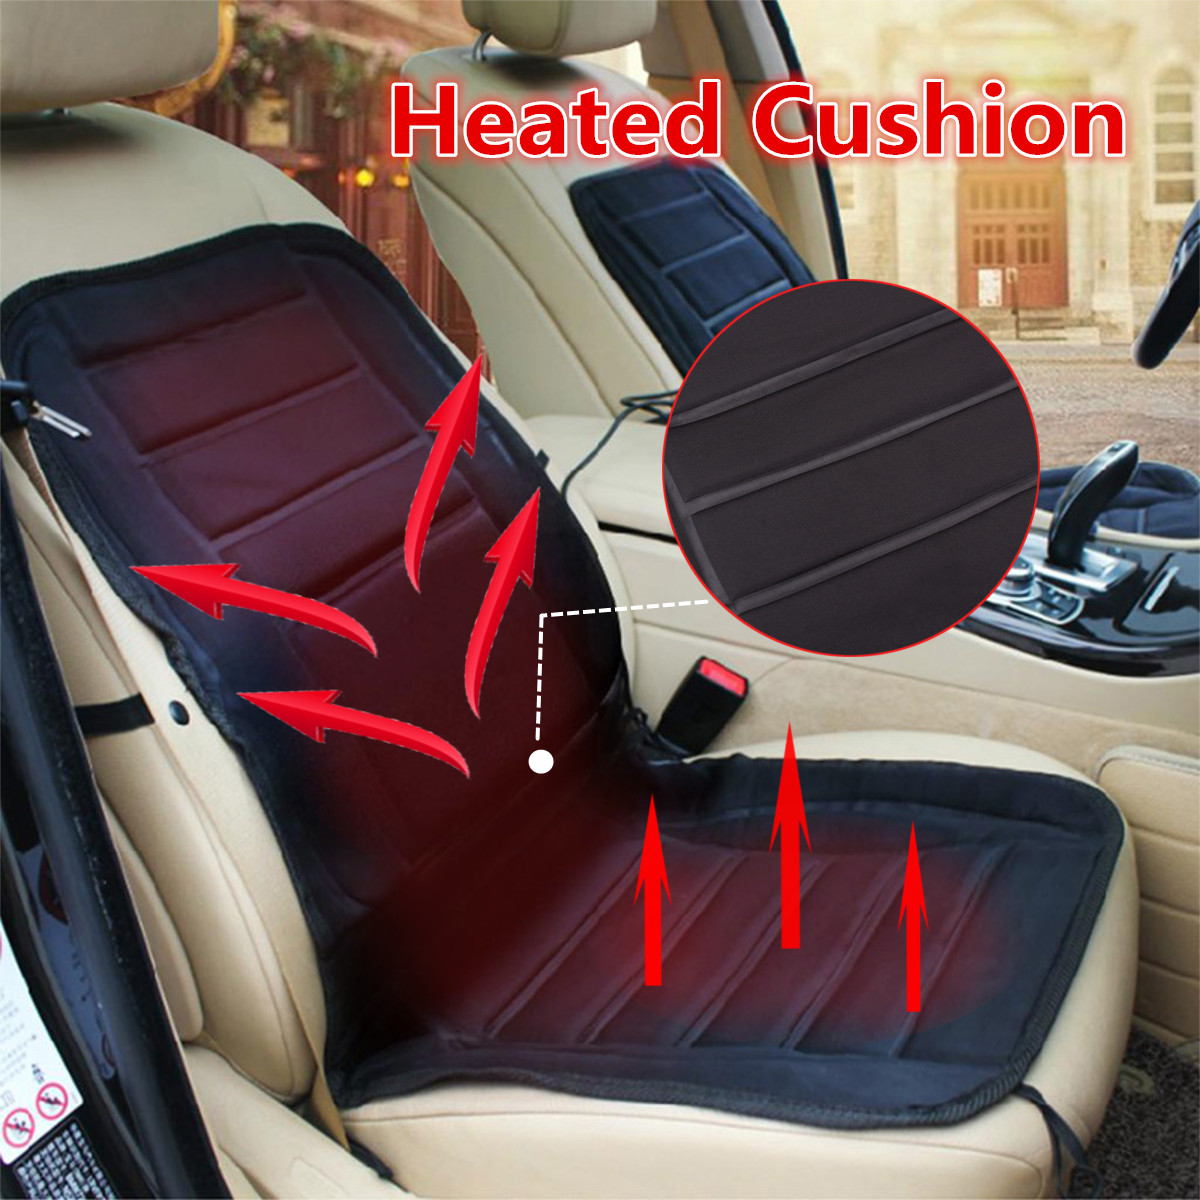 Car Heated Cushion Pad Warmer Winter Universal Seat Hot Heating Heat Cover 30w-45w 30�-60� Cigarette Lighter Adapter... by